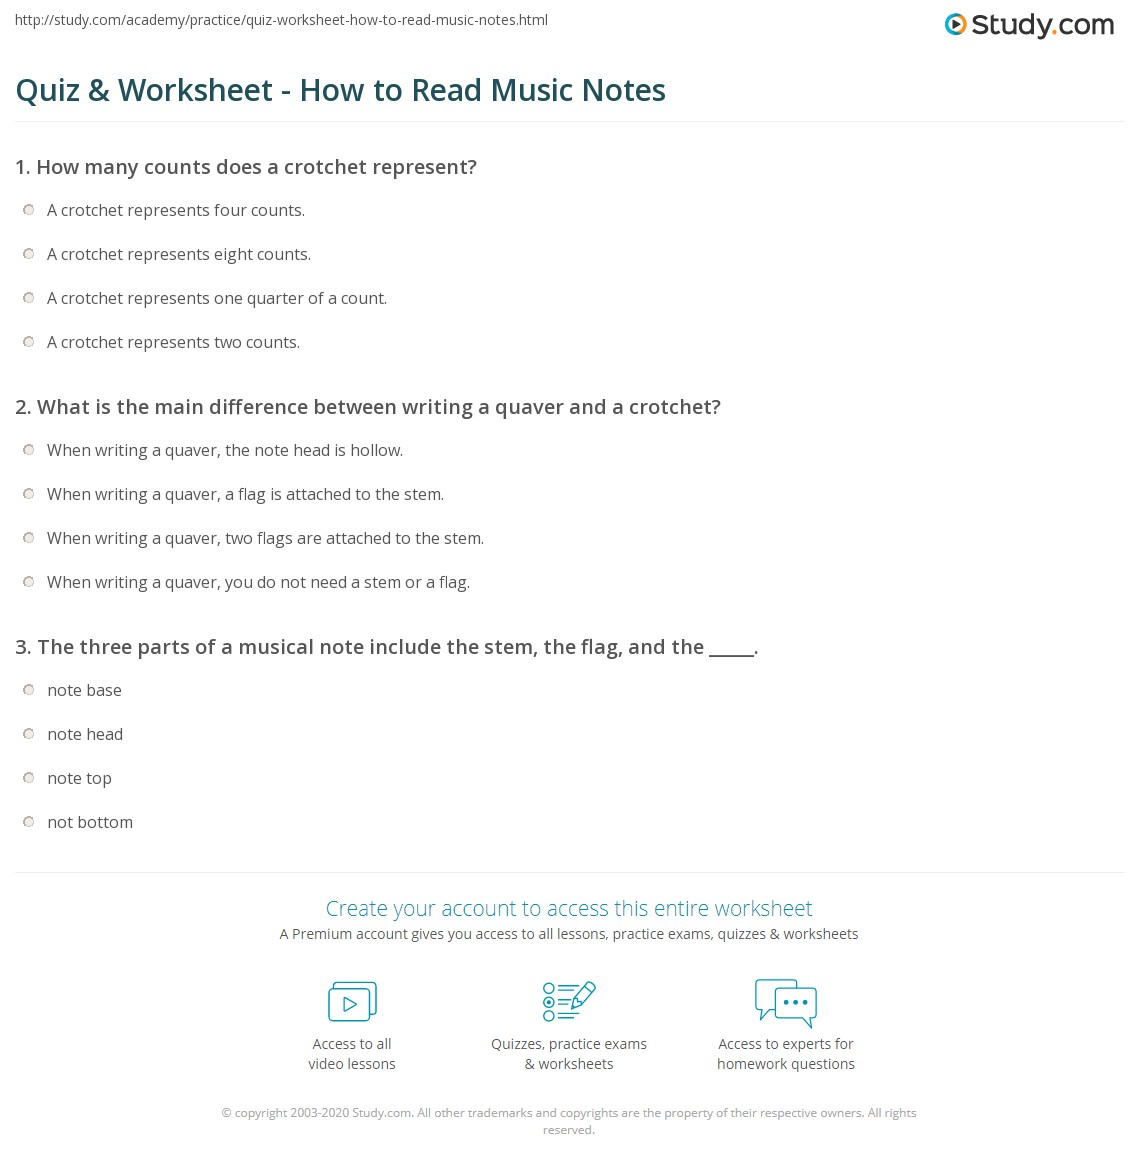 Quiz Worksheet How To Read Music Notes Study